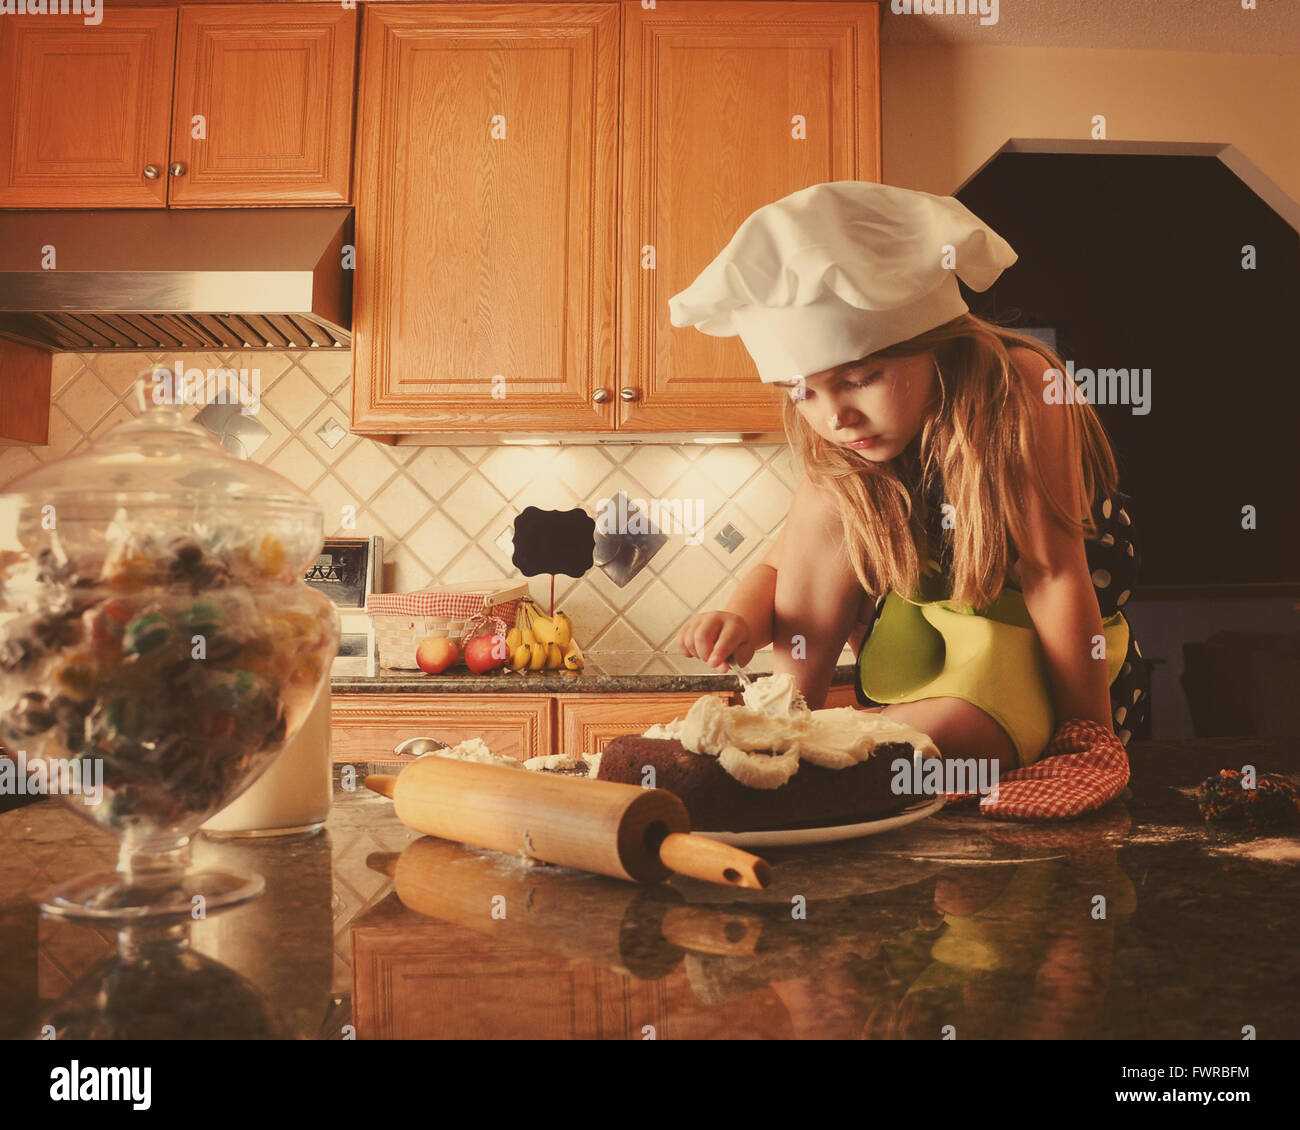 A little child is frosting a cake in the kitchen for a bakery, diet or food concept. The girl is wearing a white - Stock Image